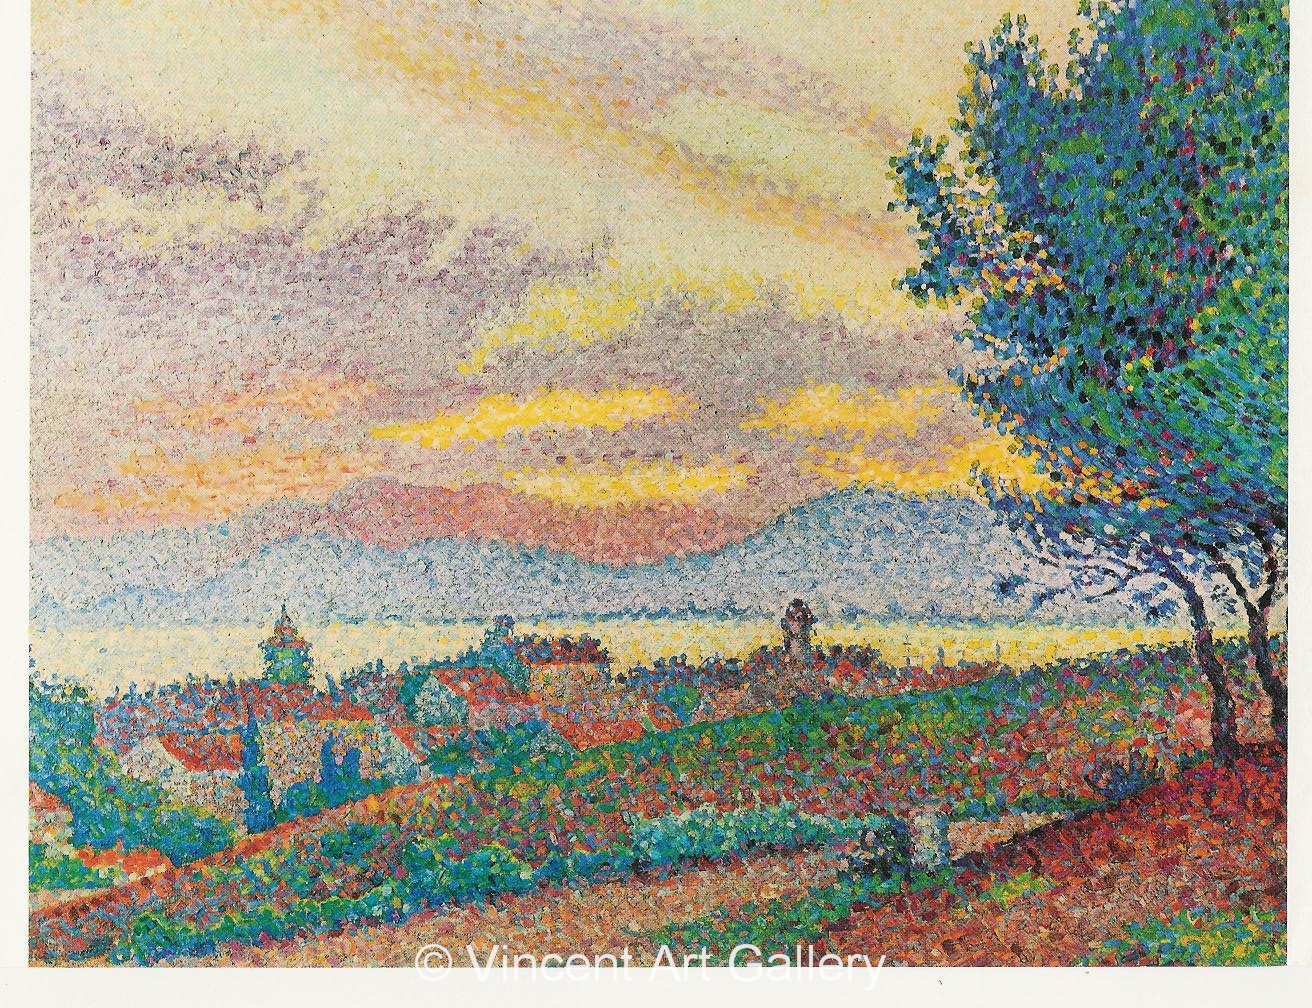 A273, SIGNAC, View on St. Tropez 001